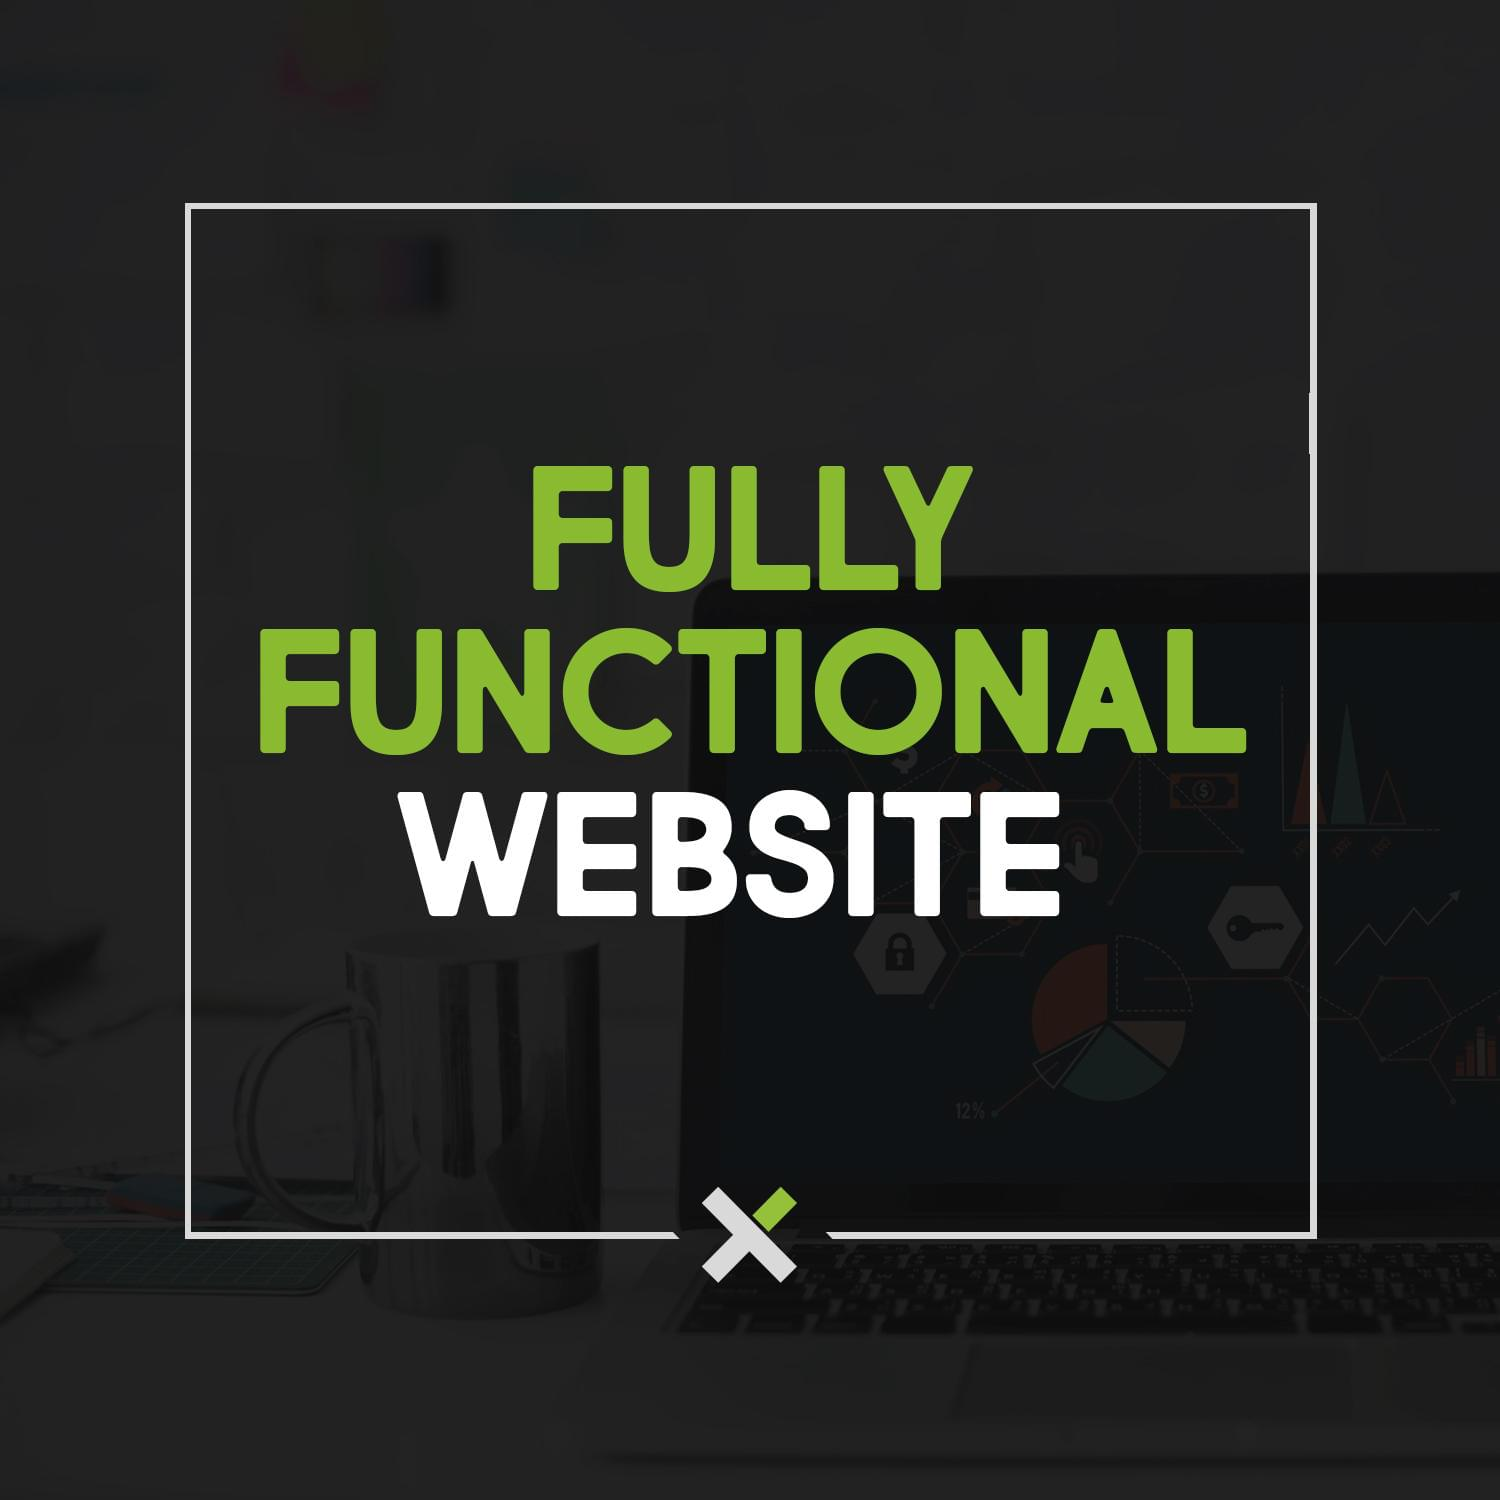 Fully Functional Website In WordPress With Your Content by touringxx - 114842